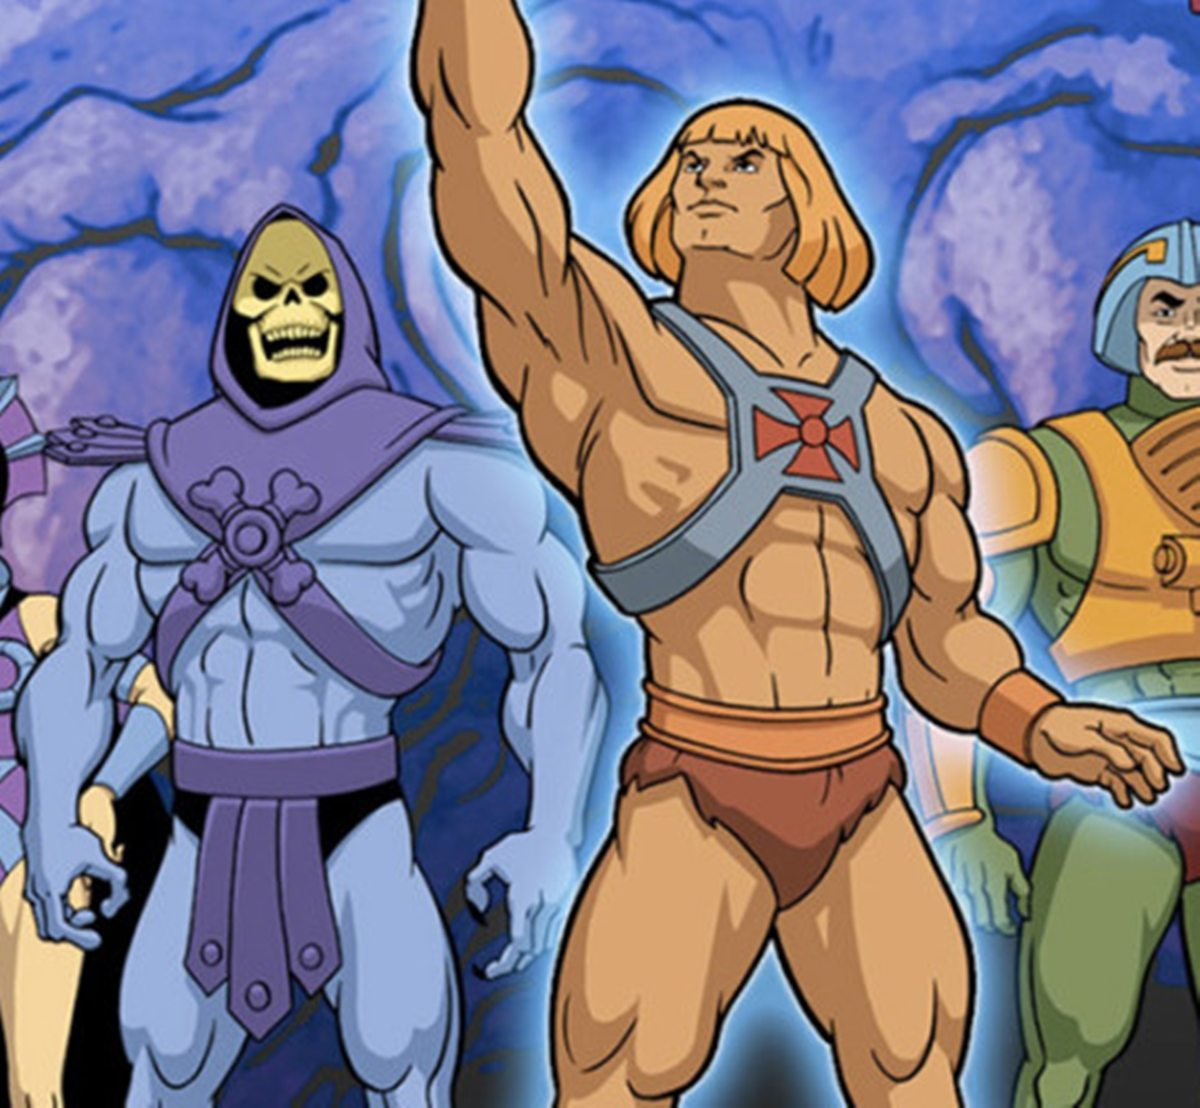 2 23 Another 16 Facts About 80s Cartoons That Will Ruin Your Childhood